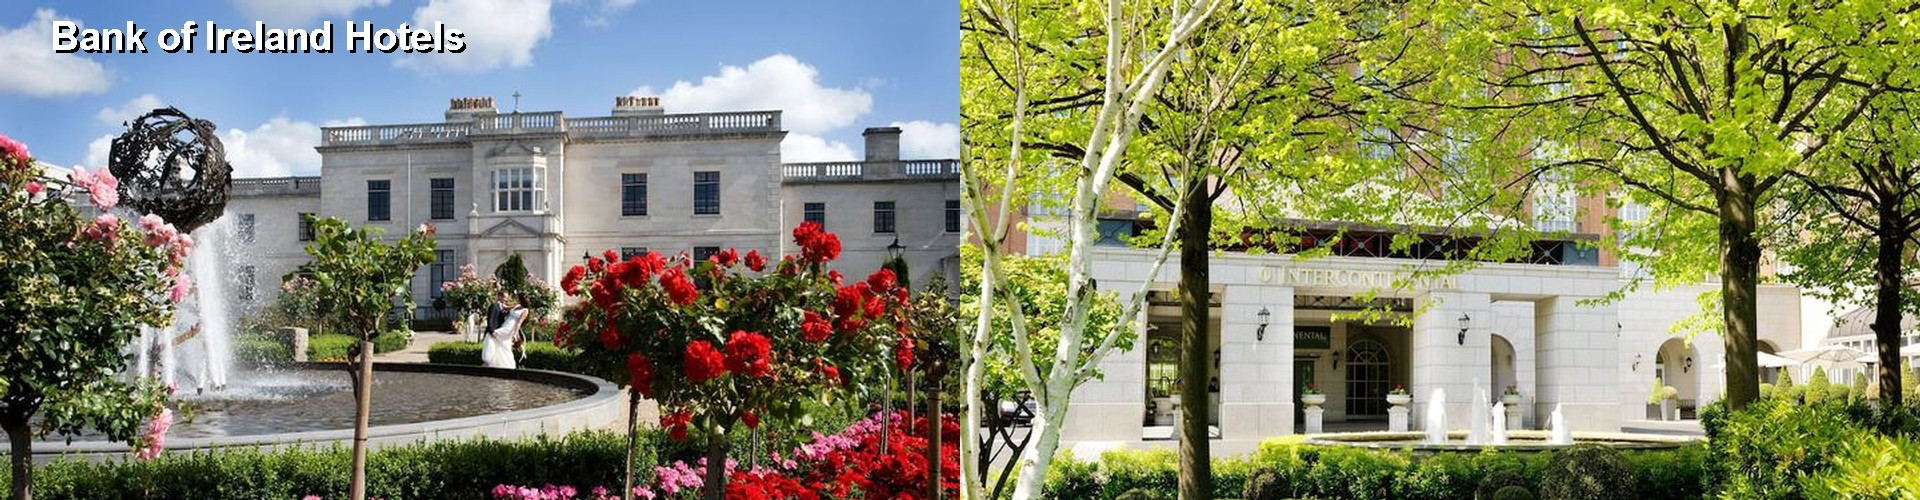 5 Best Hotels near Bank of Ireland